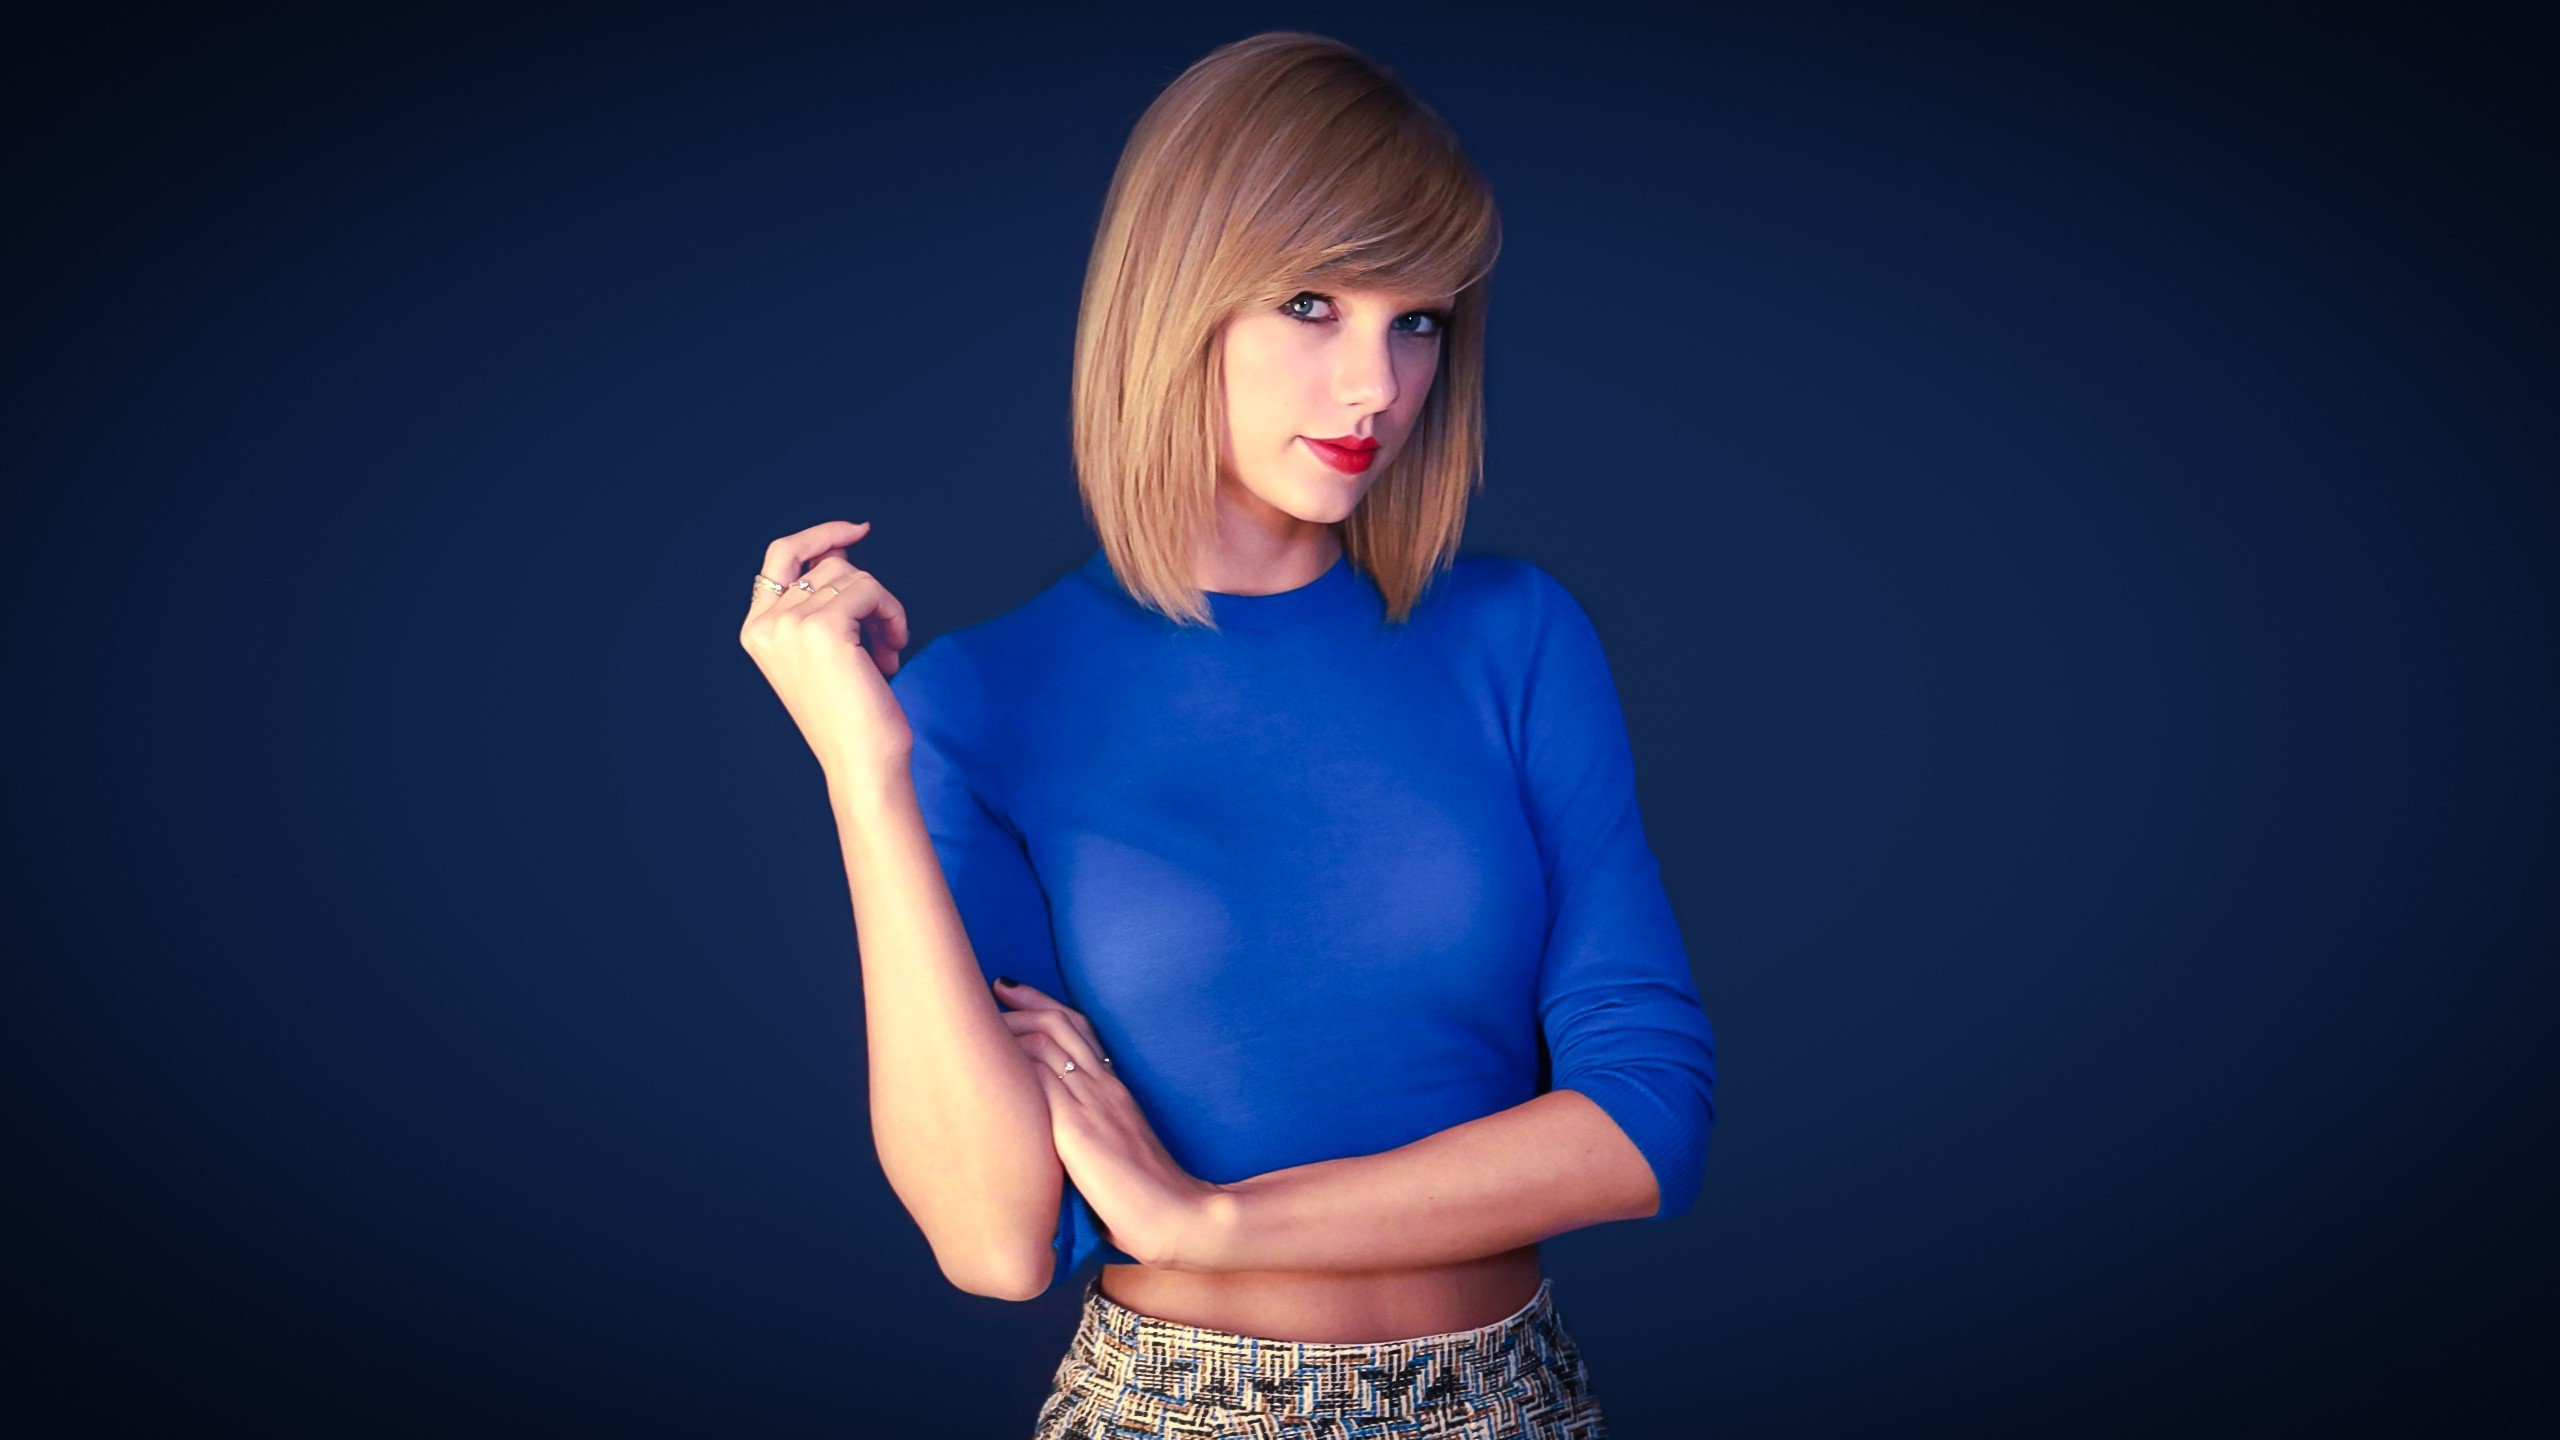 Taylor Swift New Hd Celebrities 4k Wallpapers Images